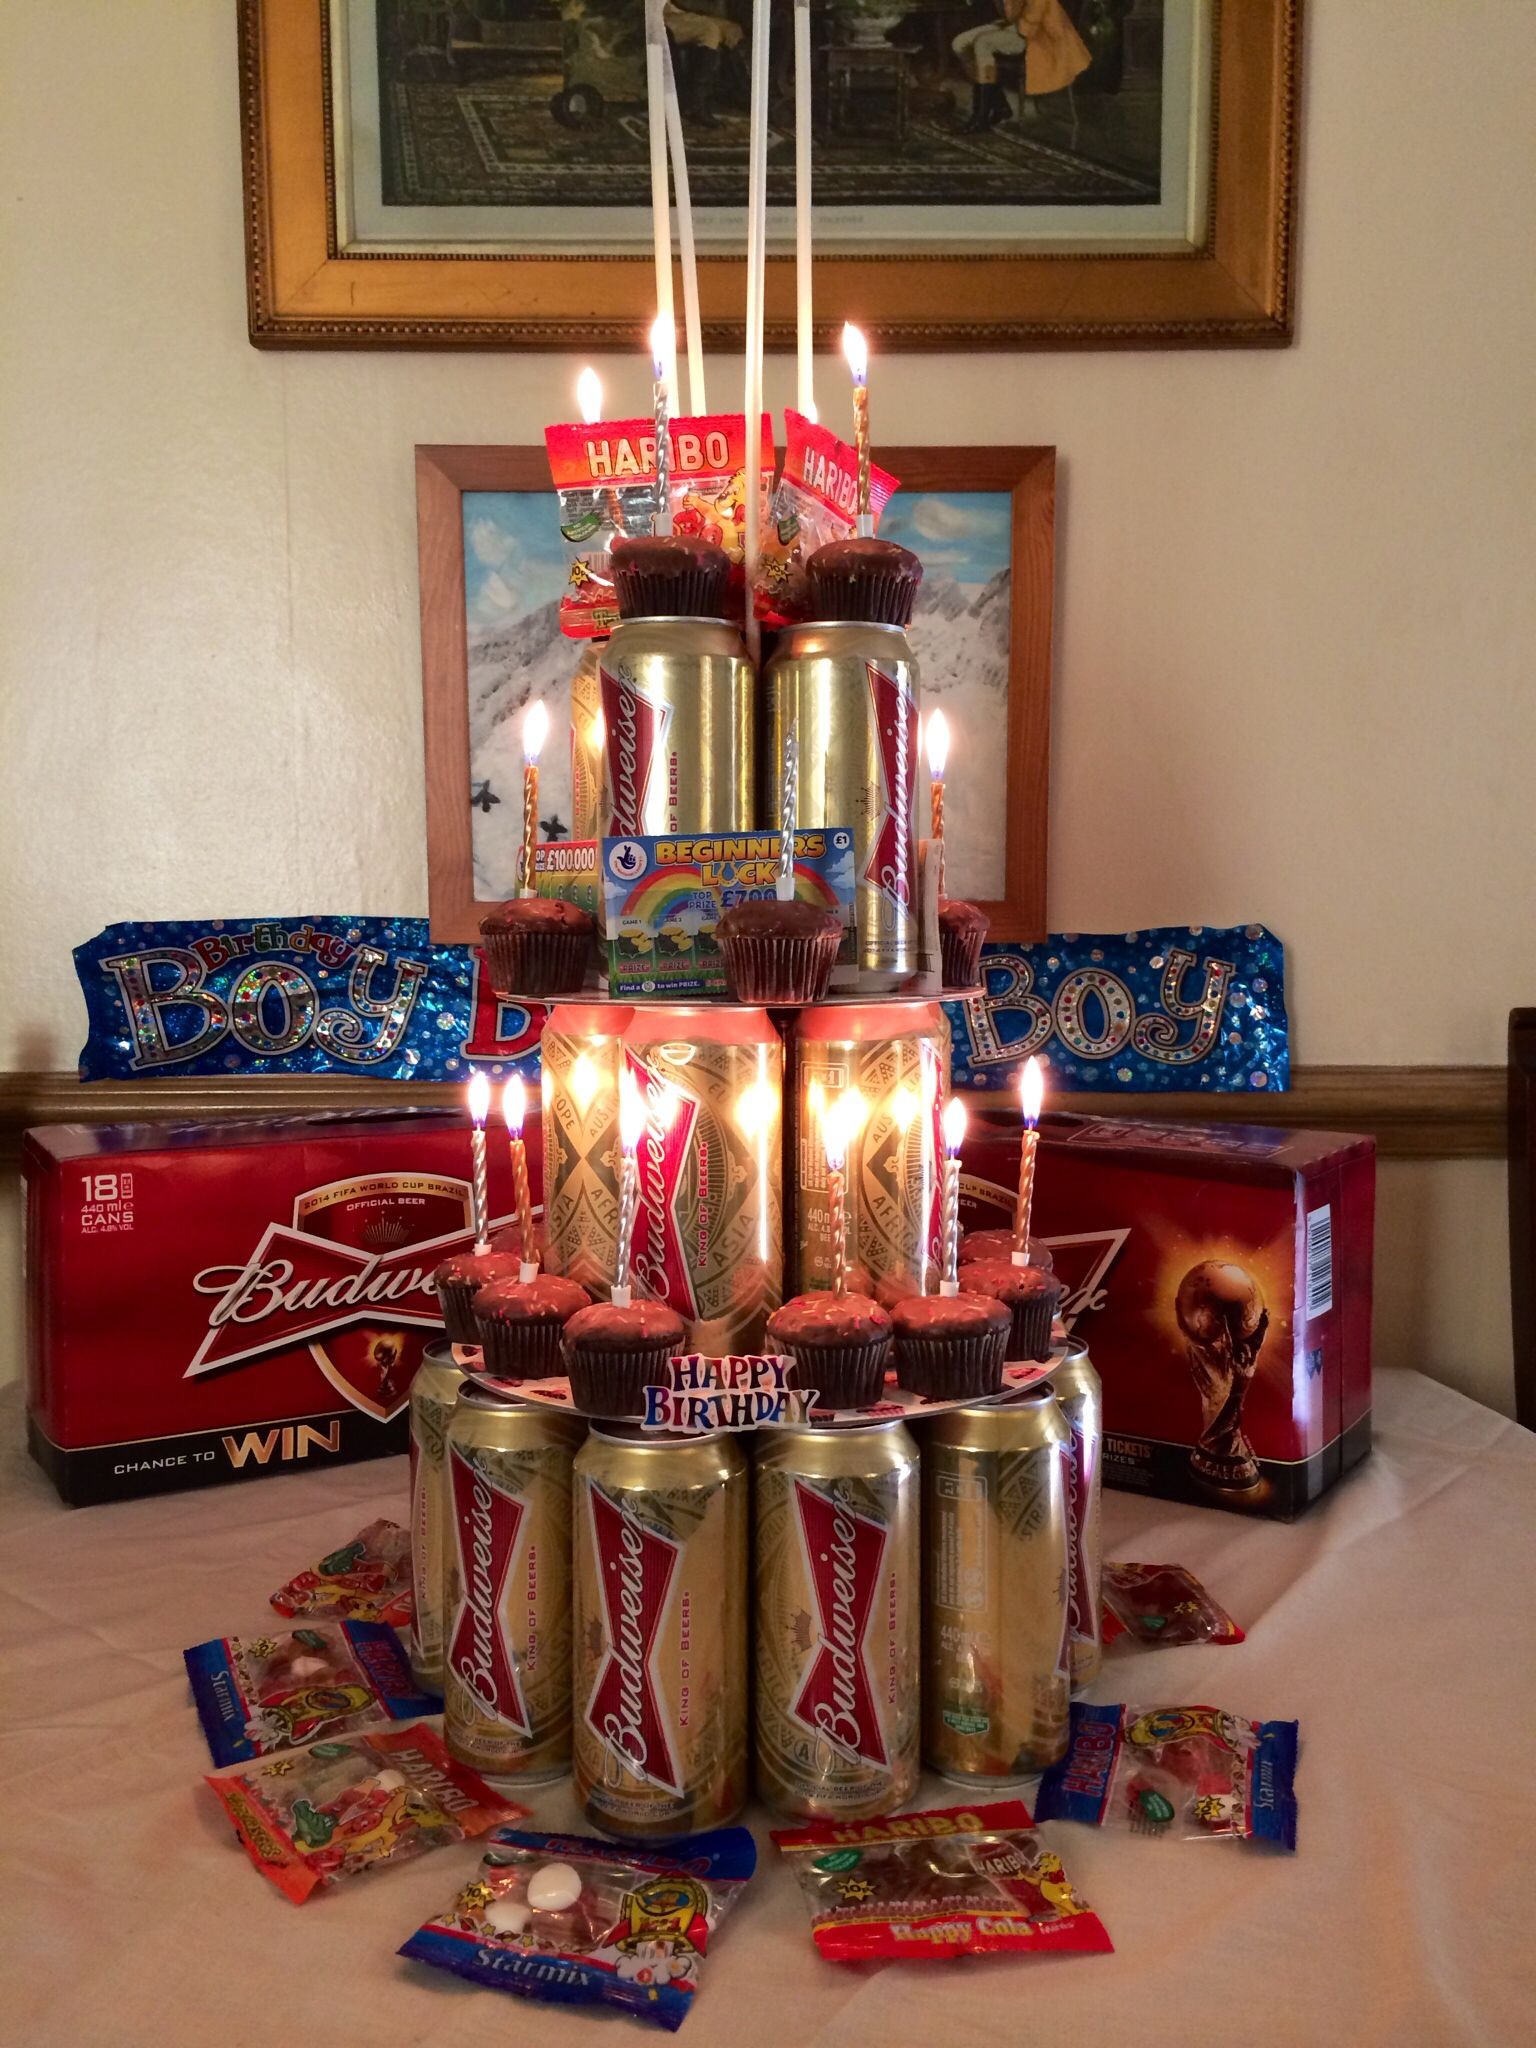 Beer Cake Using cans of Budweiser haribo cupcakes and scratch